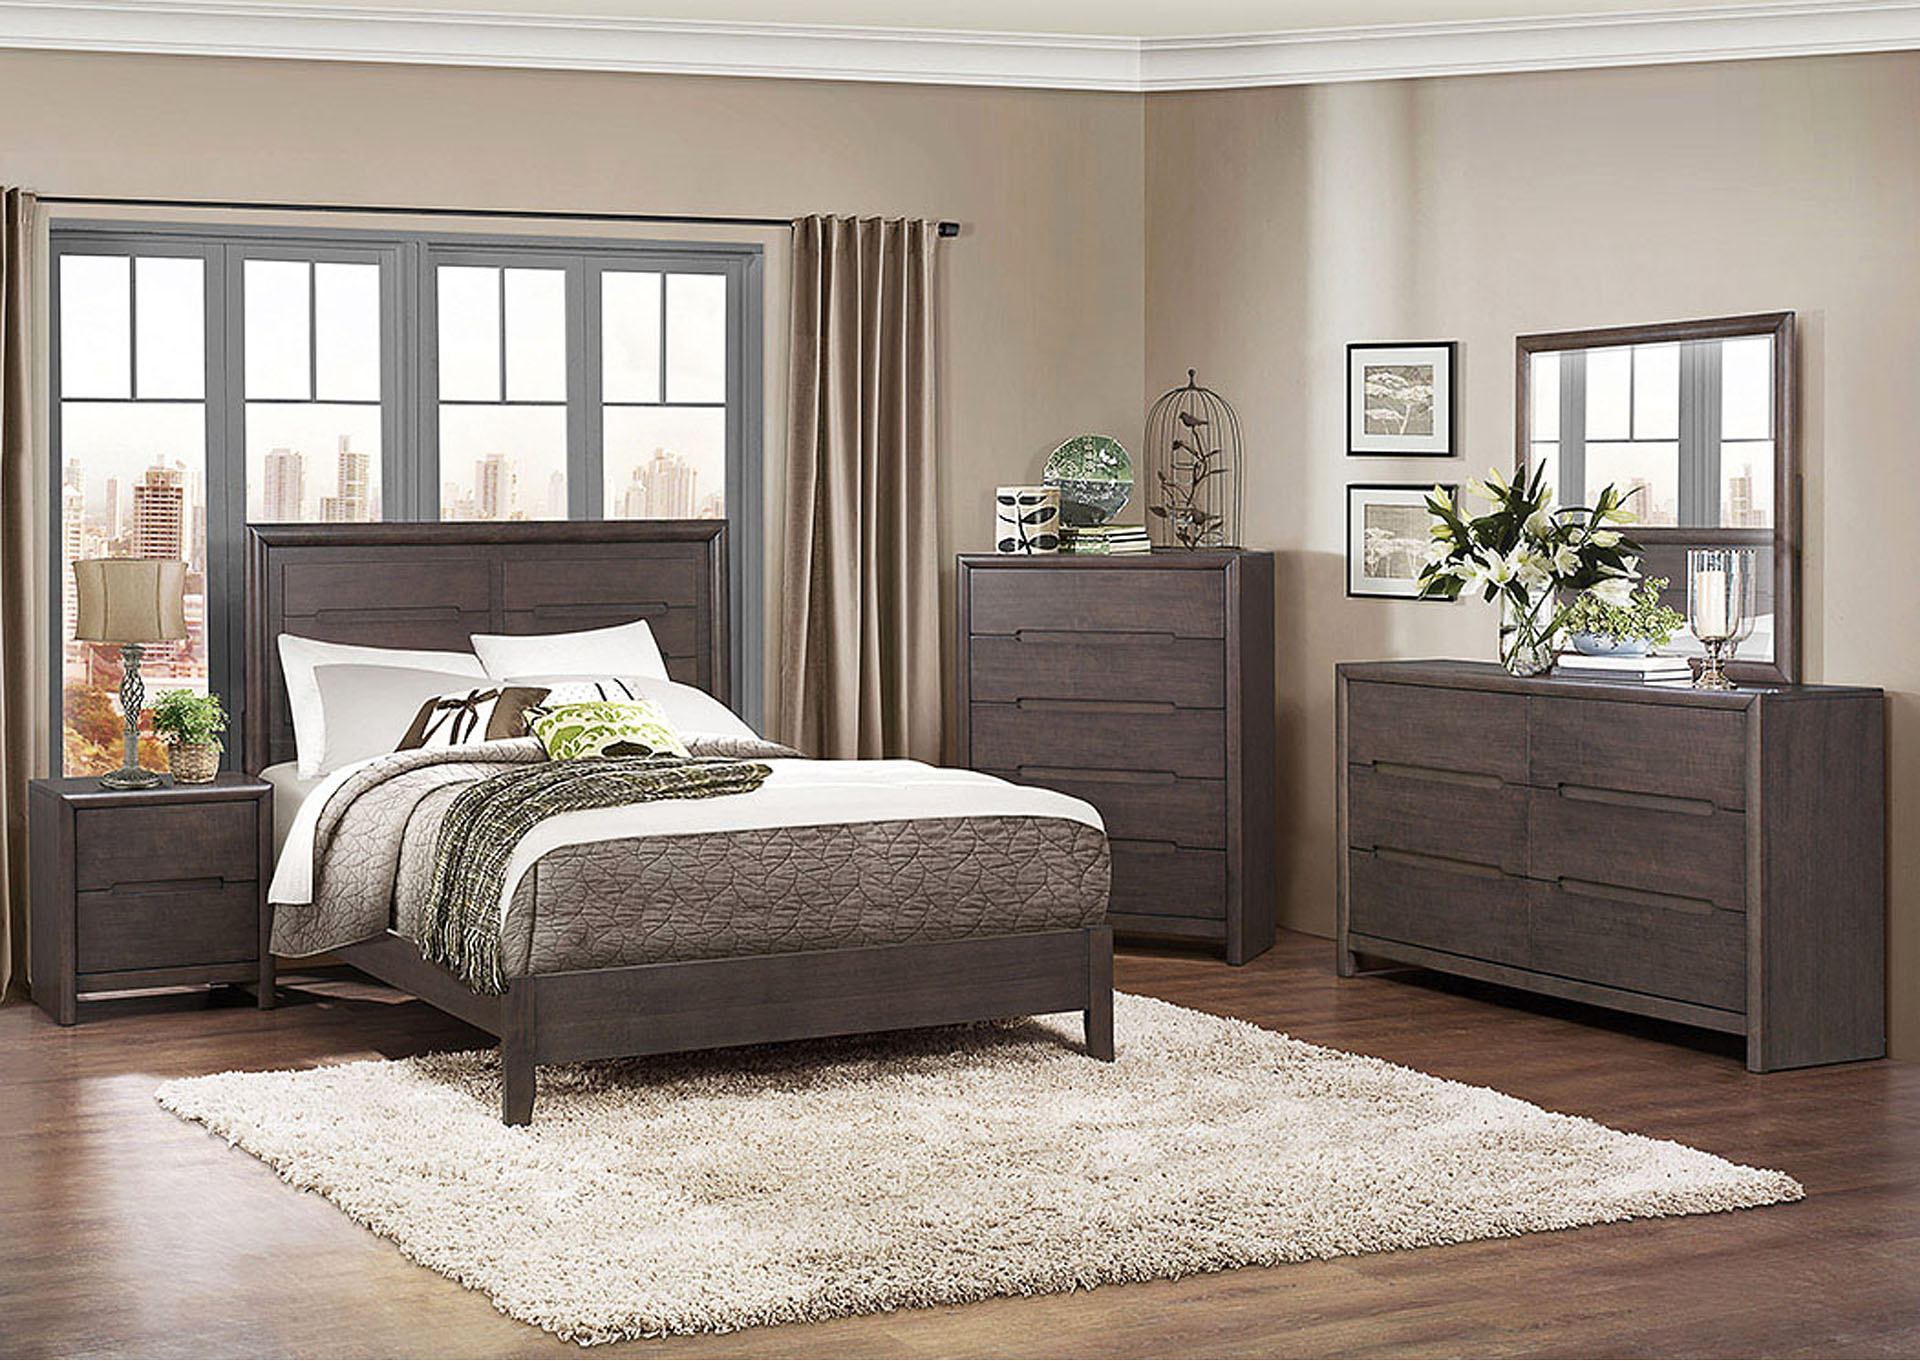 Lavinia Weathered Gray Queen Platform Bed w/ Dresser, Mirror, Drawer Chest and Nightstand,Homelegance